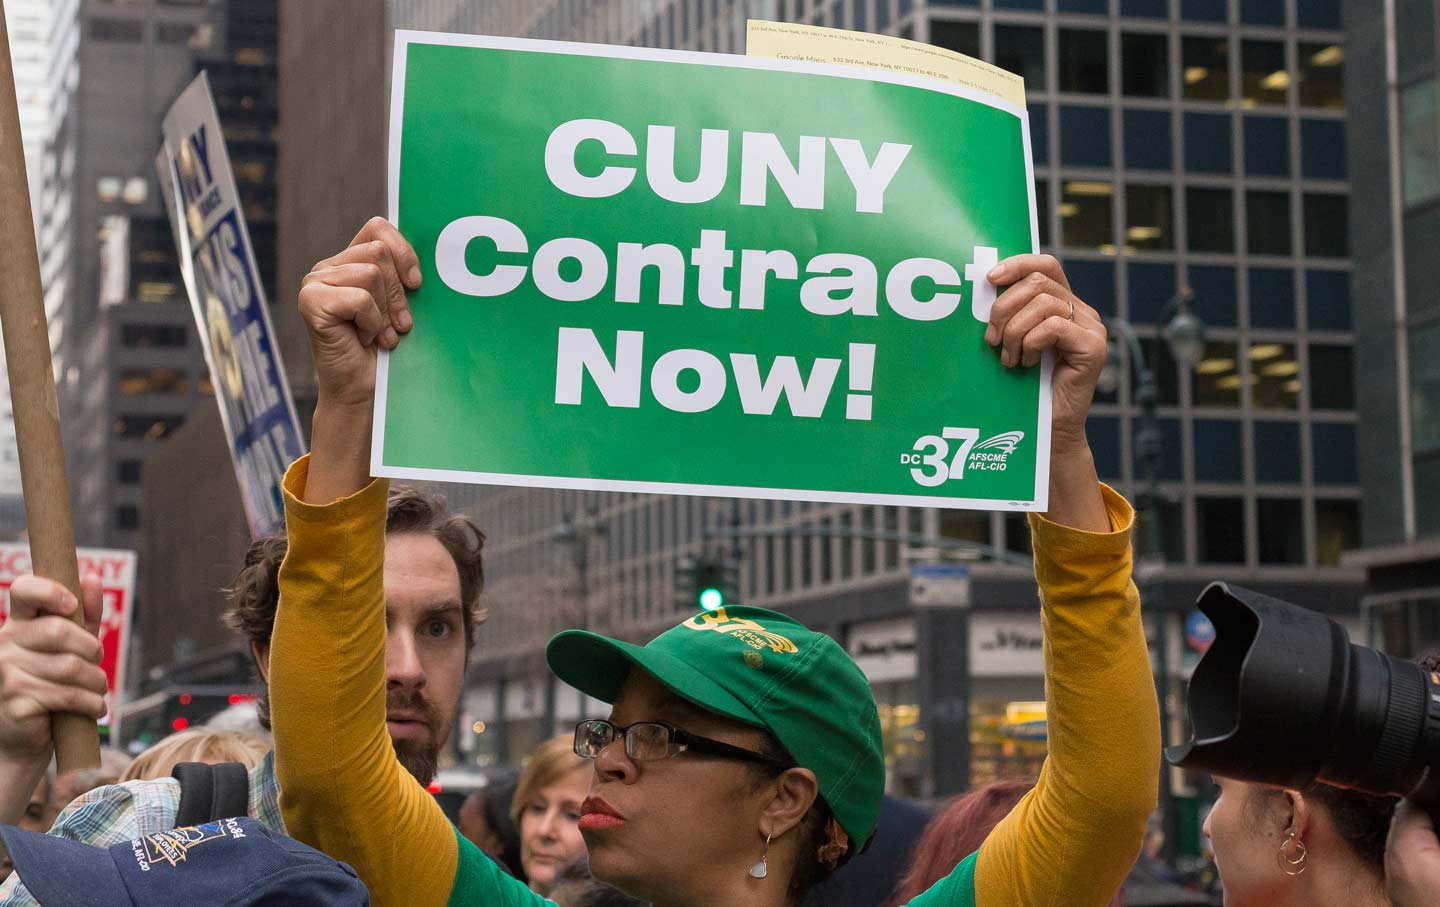 CUNY Protest